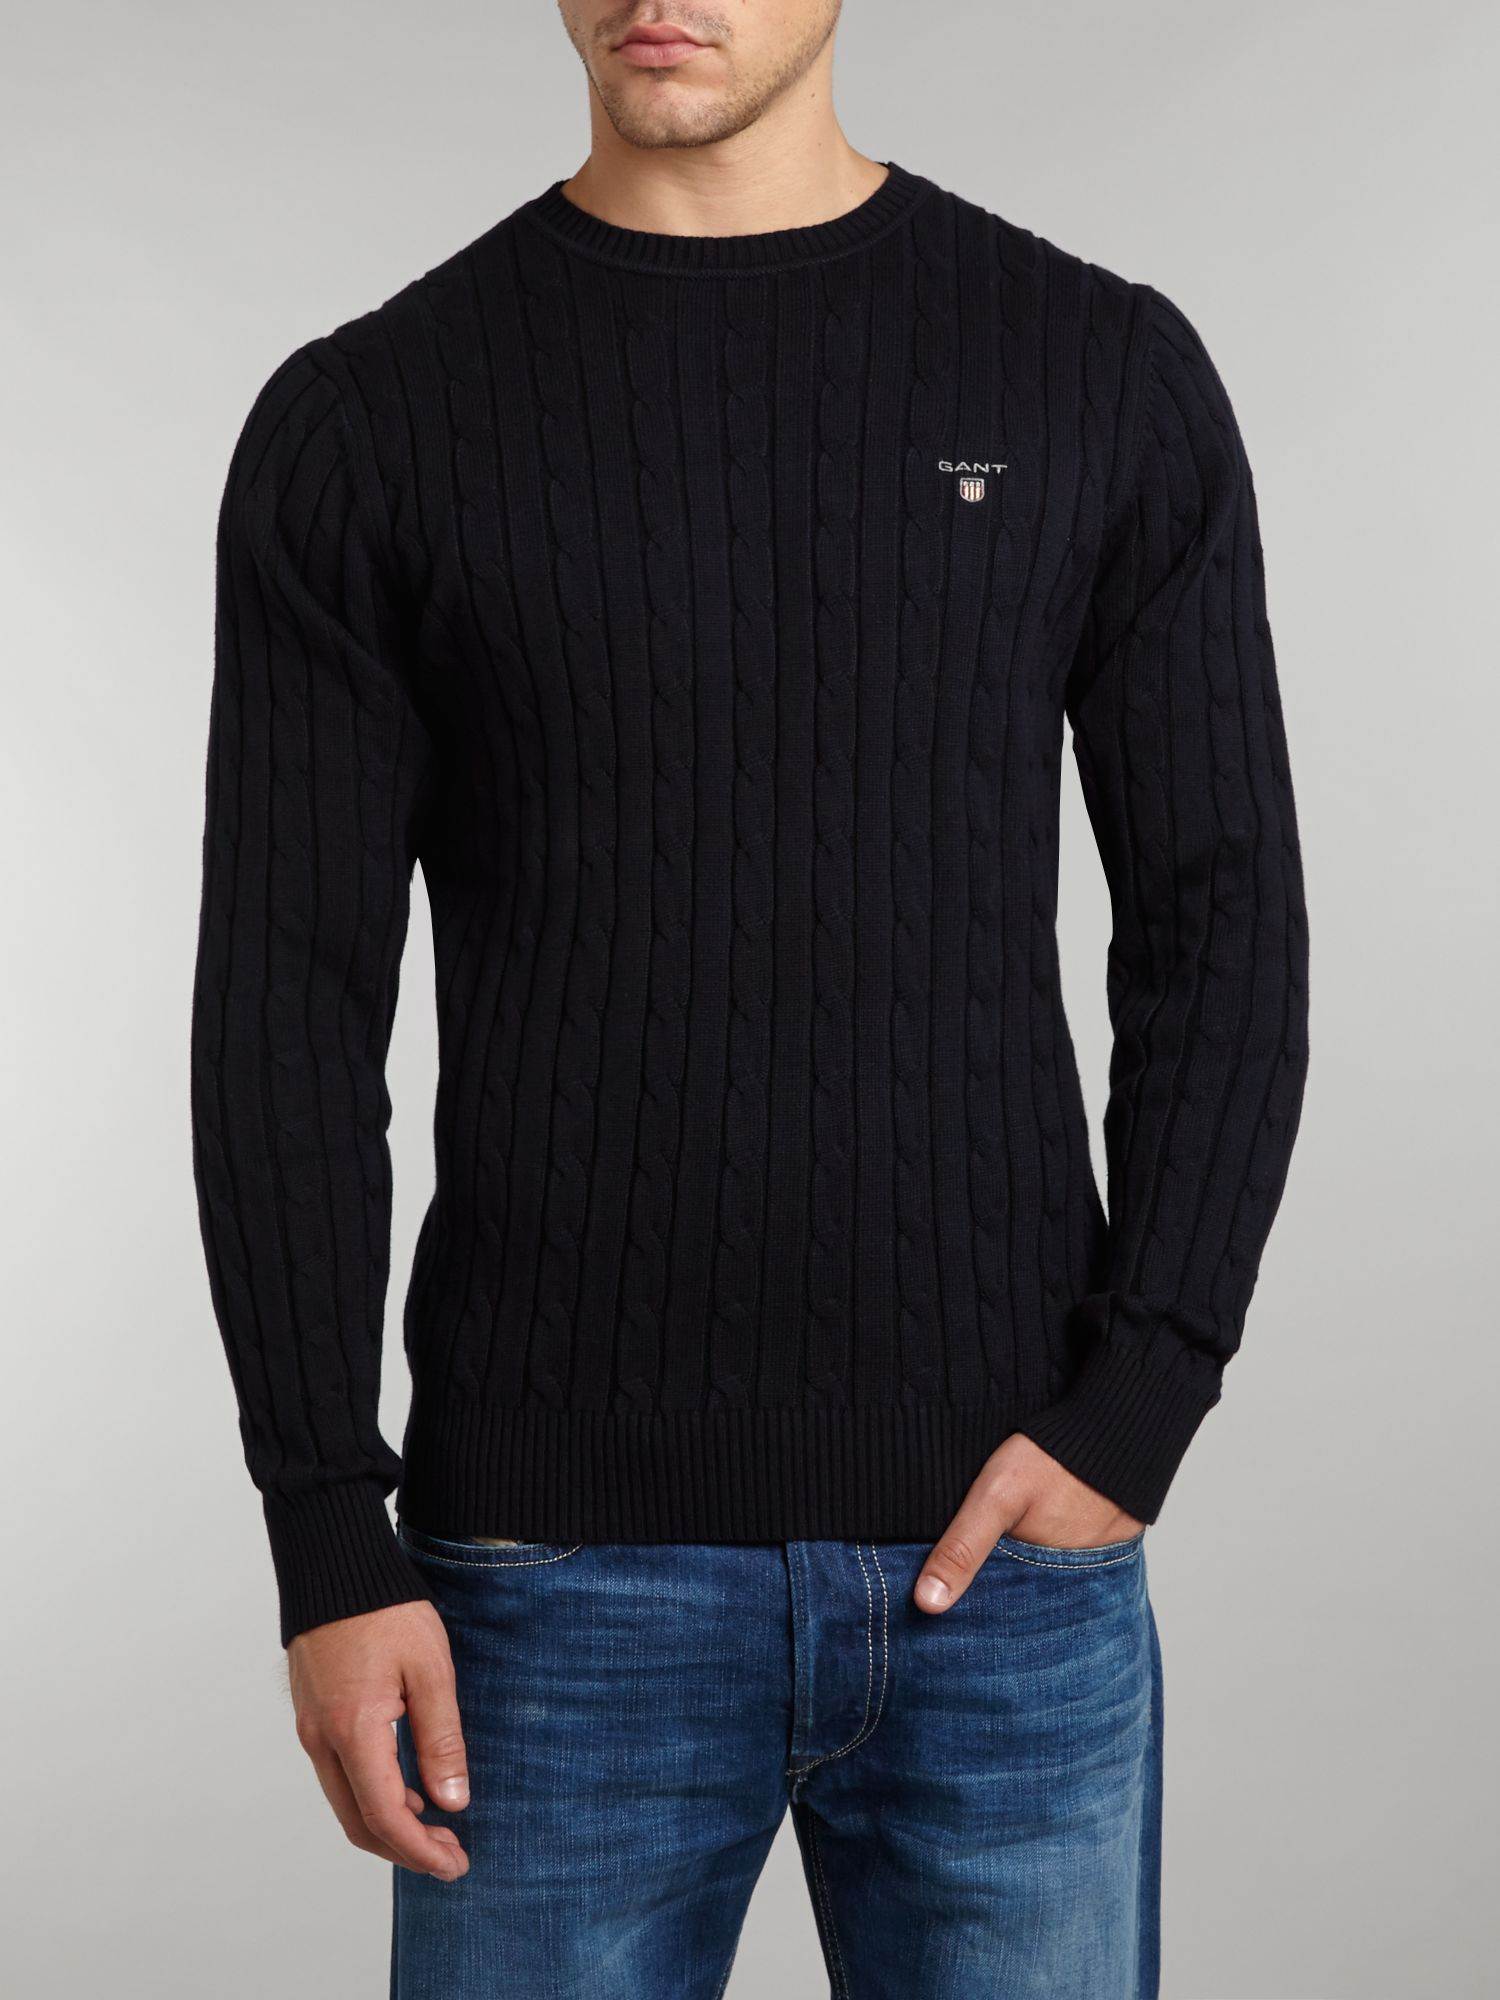 Crew neck cable knit jumper